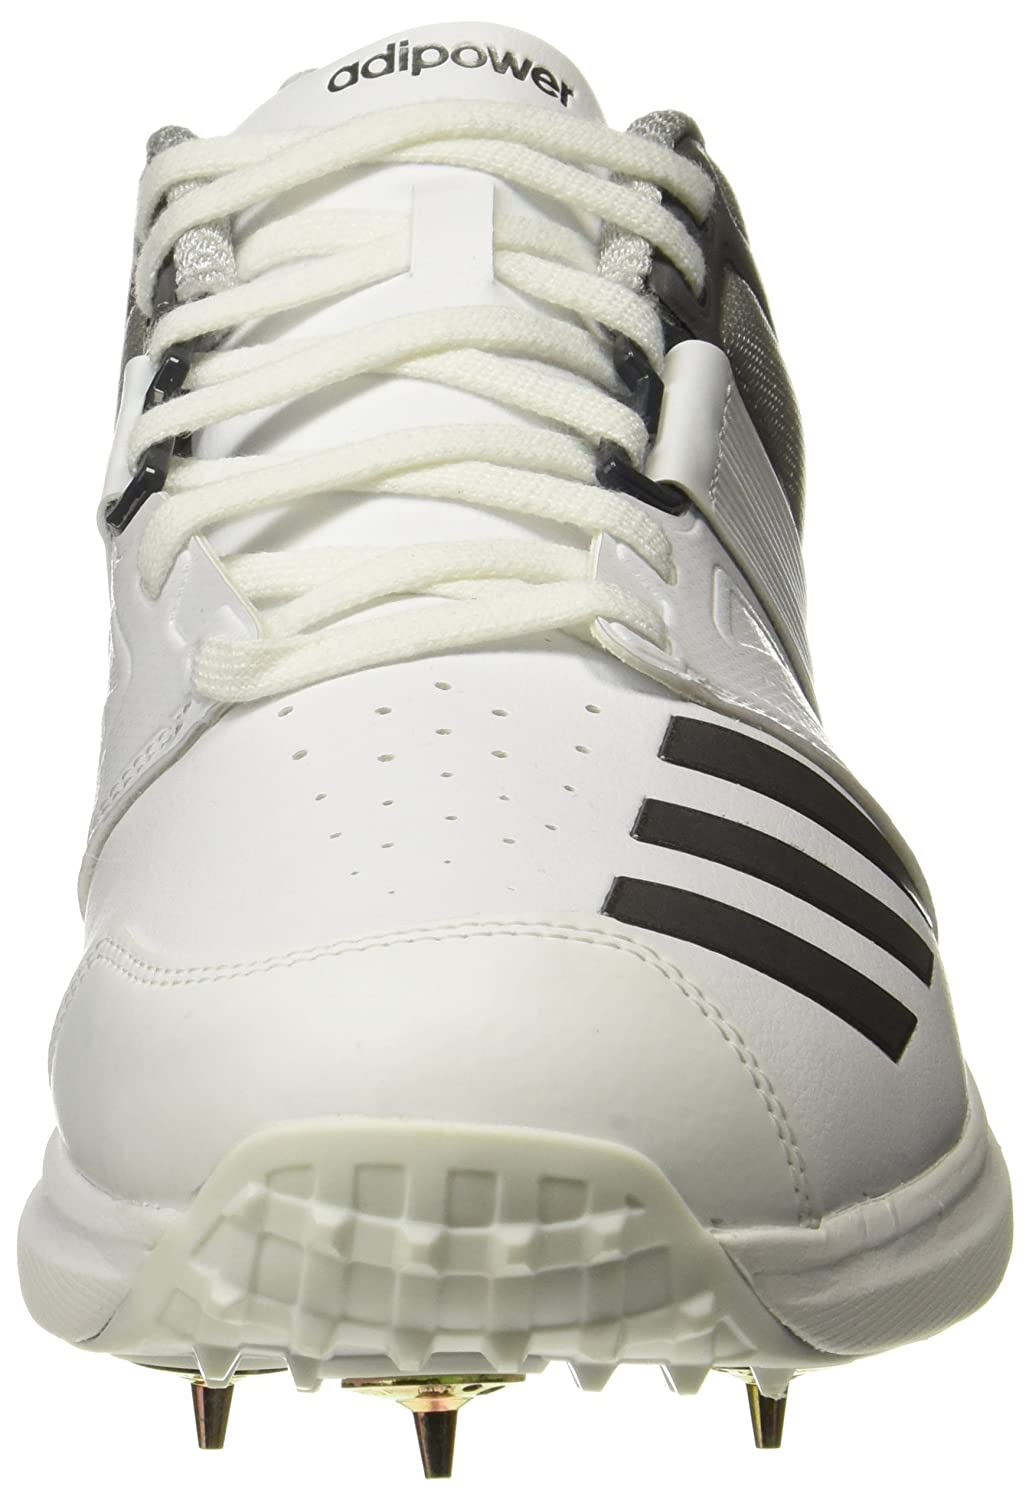 adidas adipower vector mid cricket shoes - ss18